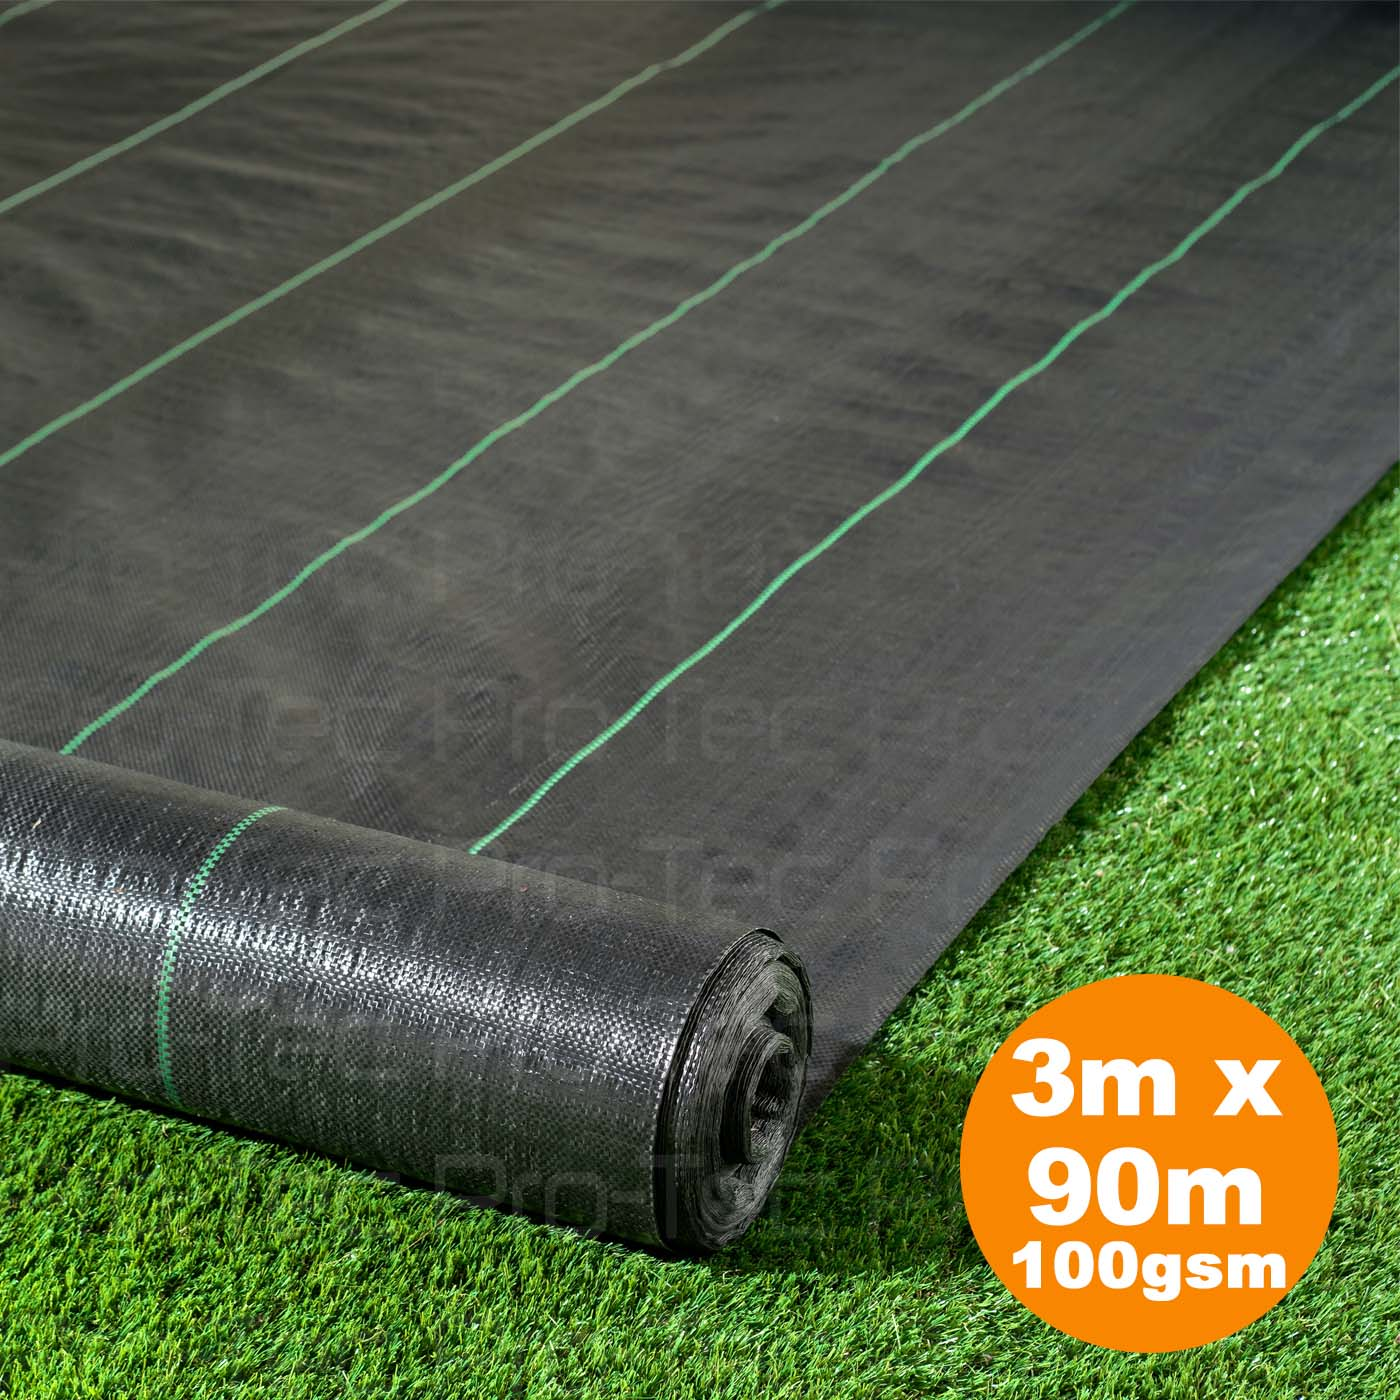 Picture of 3m x 90m Weed Control Landscape Fabric